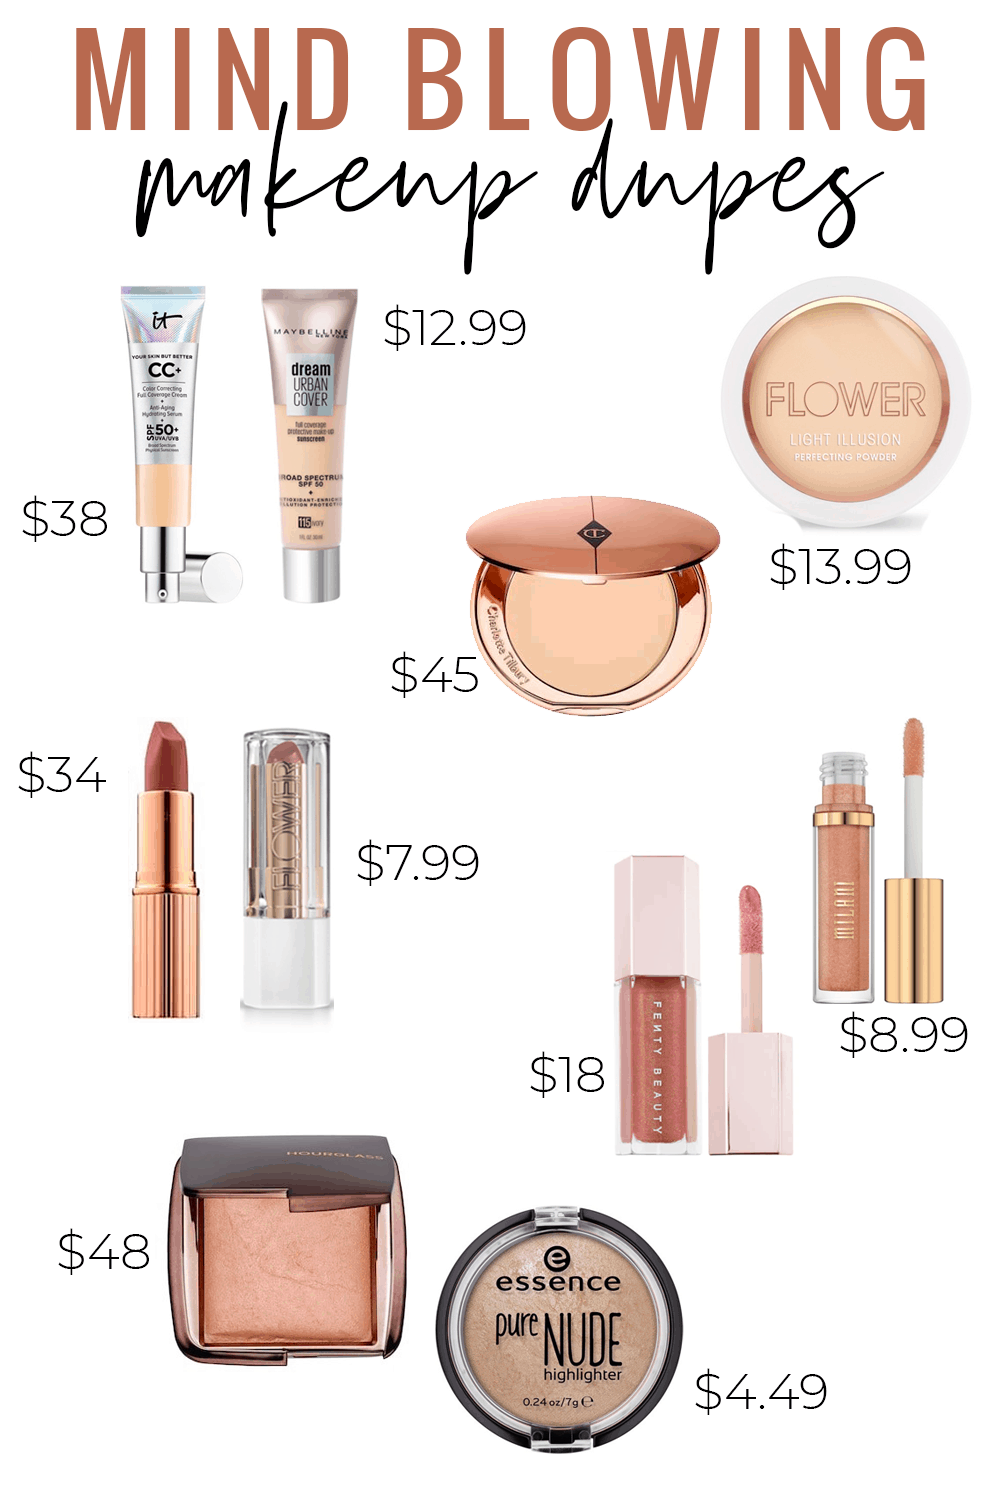 Mind blowing makeup dupes - Charlotte Tilbury Pillow Talk Lipstick Dupe. It Cosmetics CC Cream Dupe, Charlotte Tilbury Powder Dupe, Hourglass Ambient Lighting Powder Dupe, Fenty Gloss Bomb Dupe